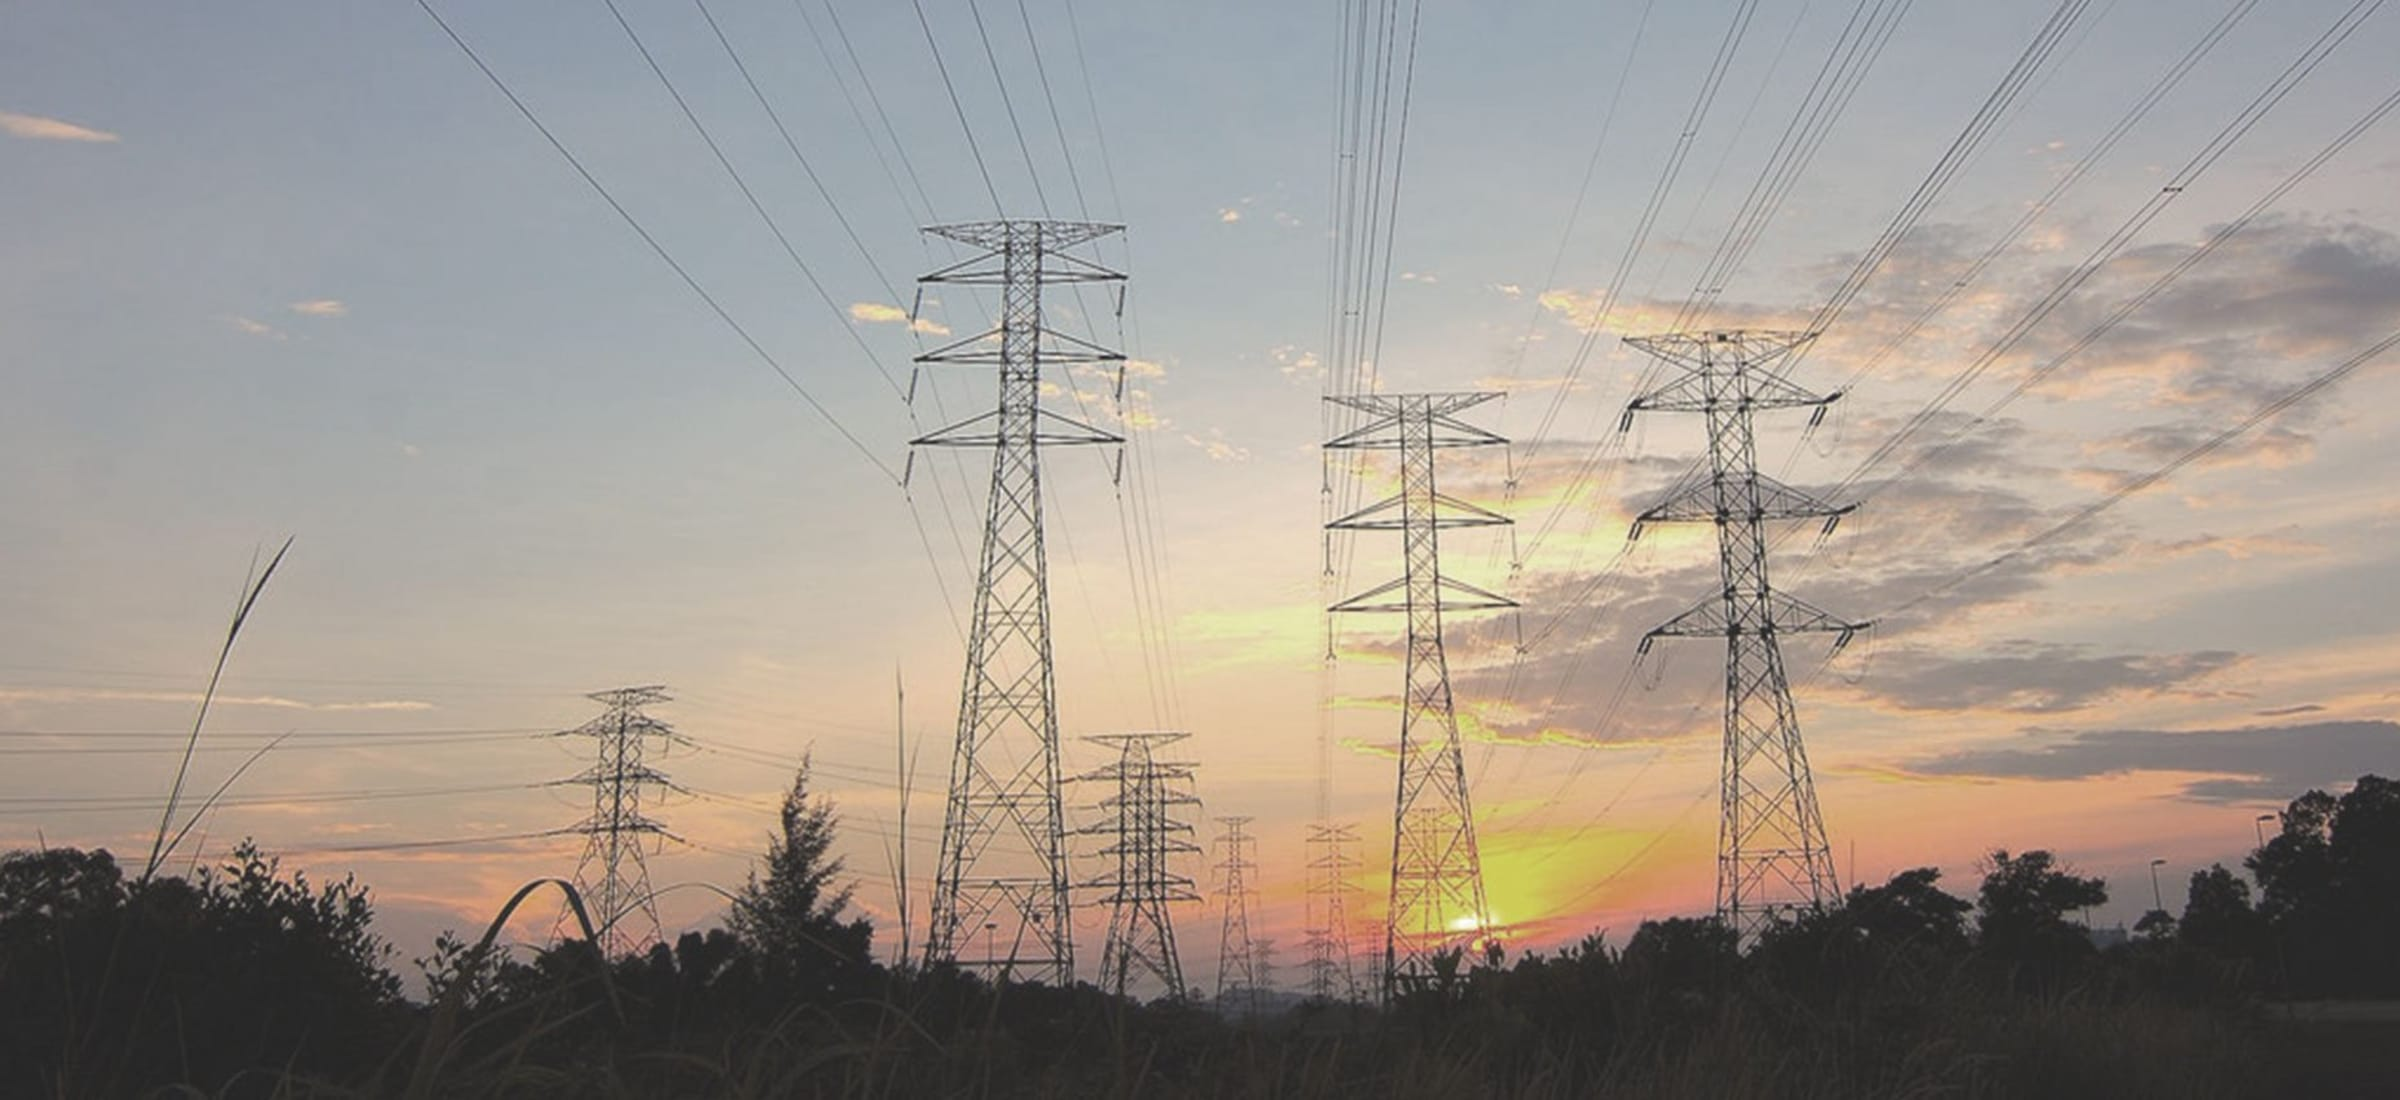 banner - power lines with a sunset in the background